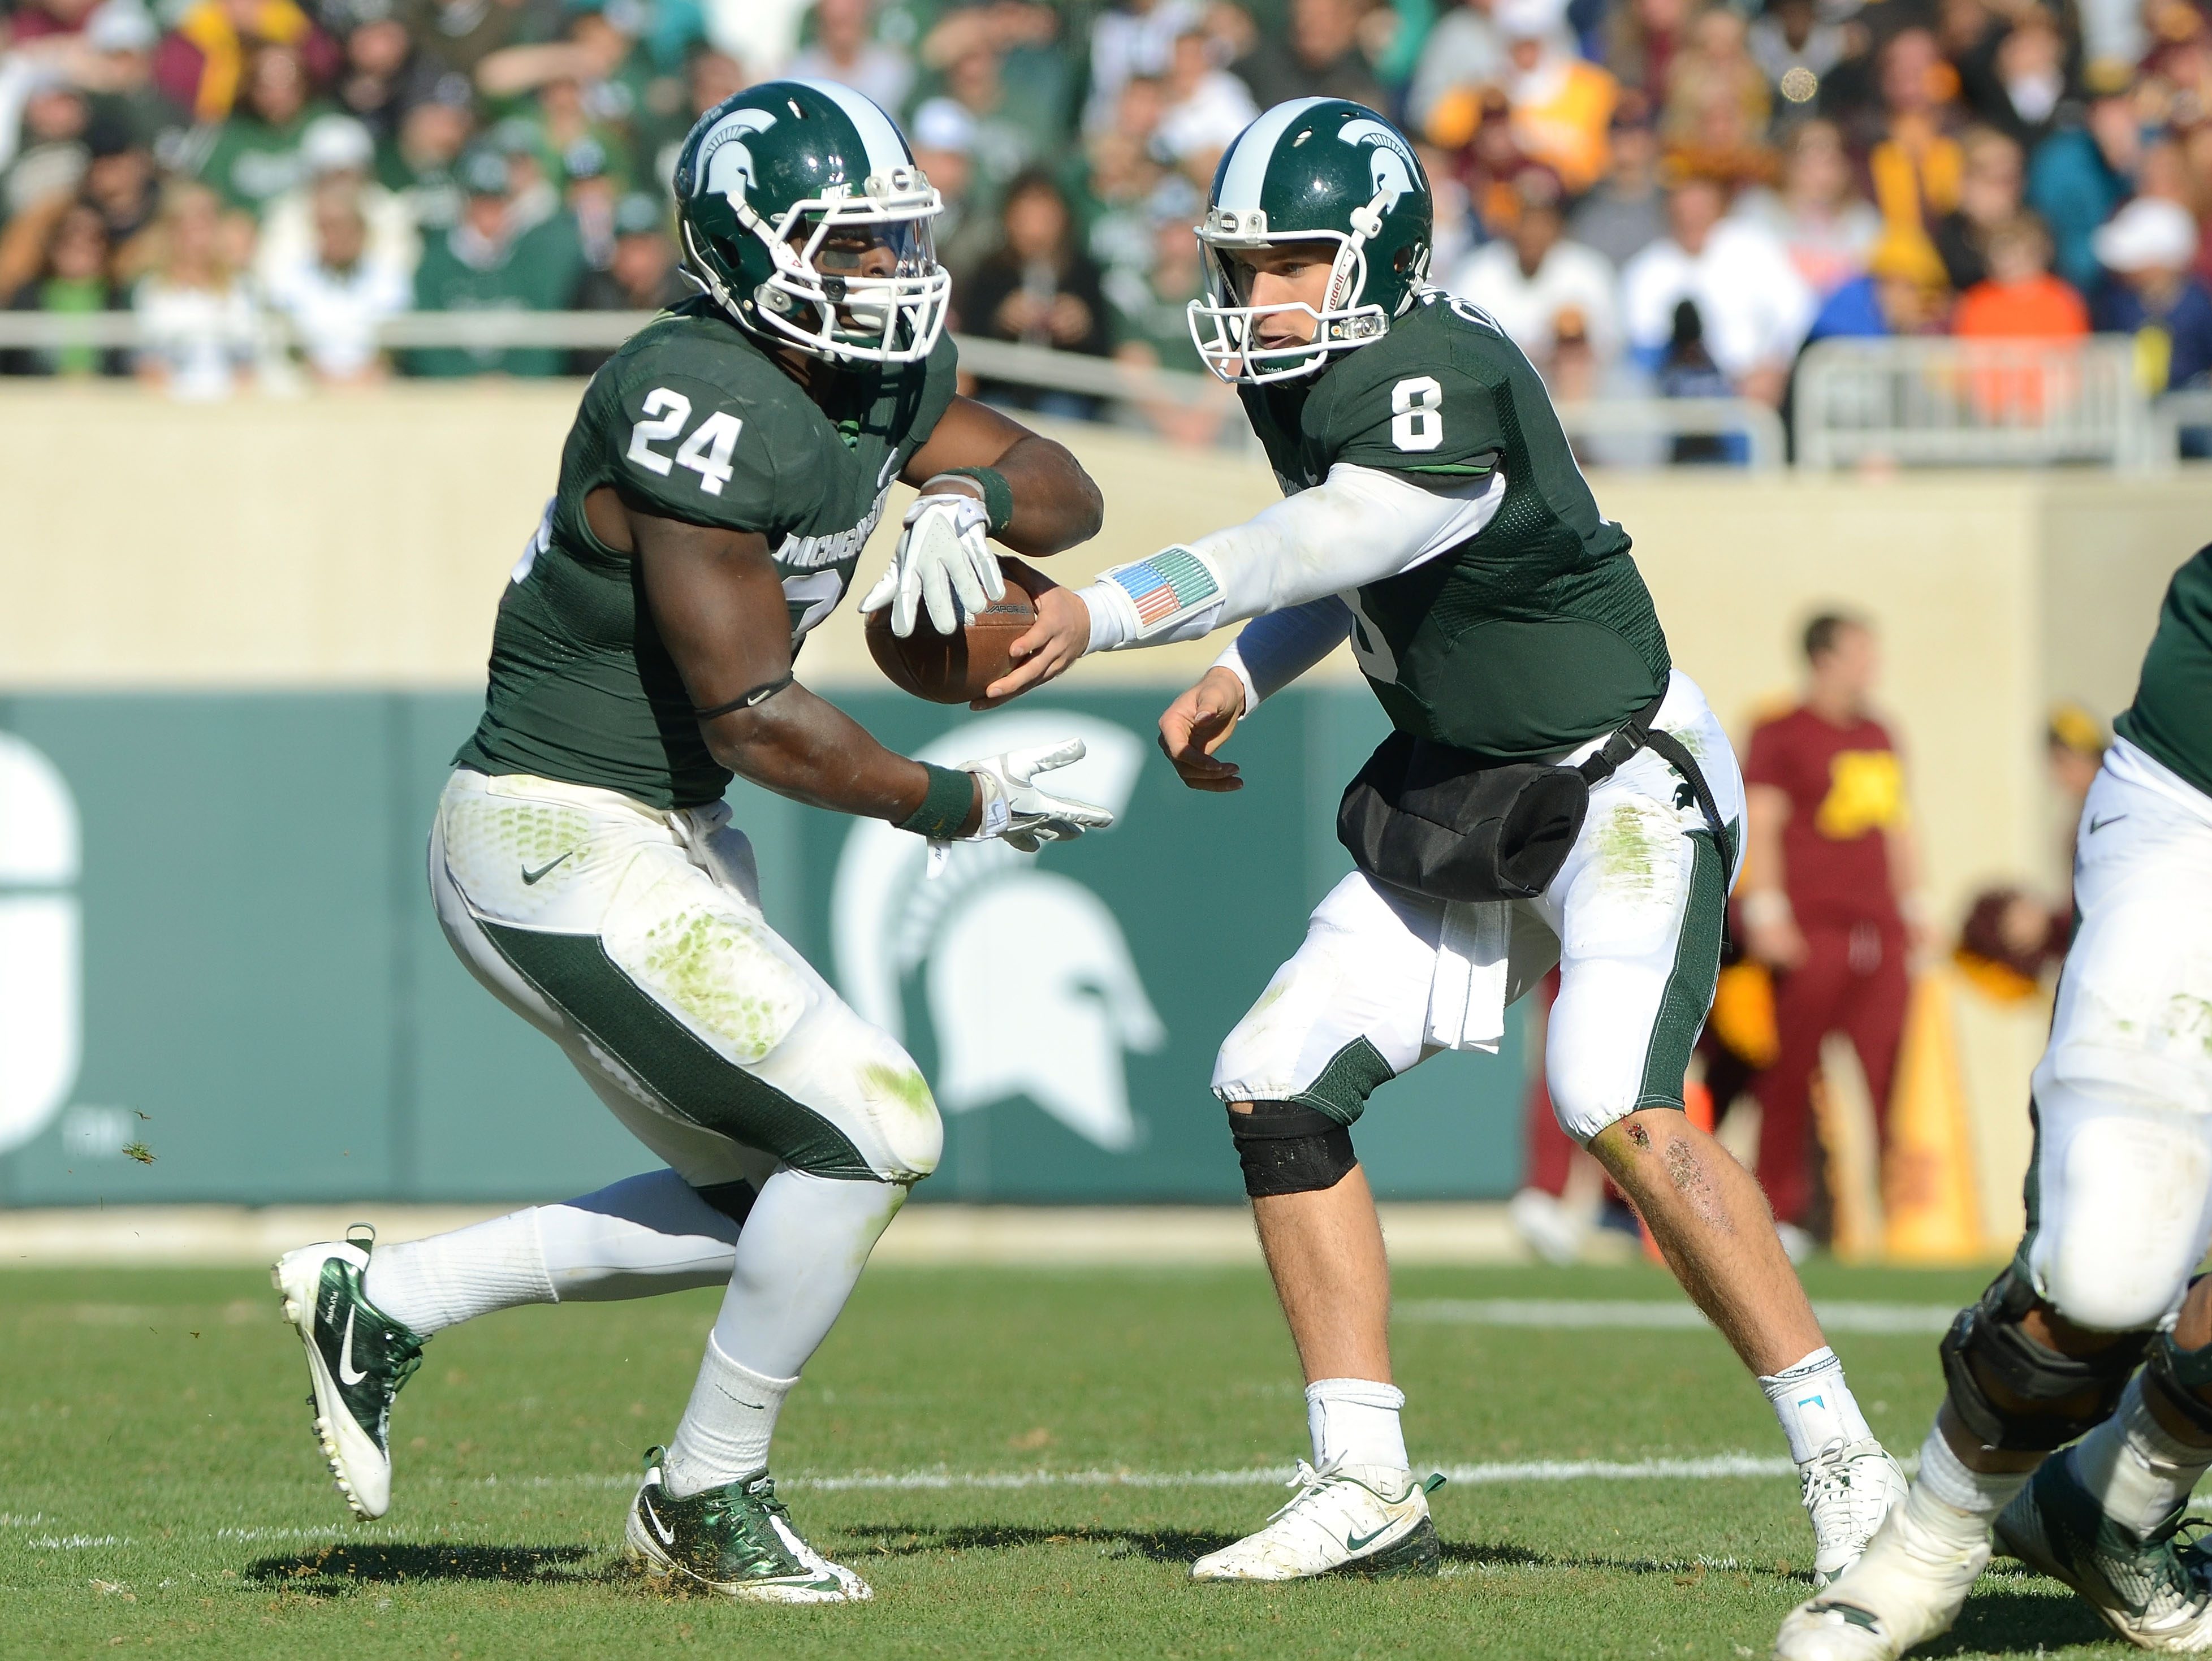 Michigan State Spartans' Kirk Cousins and Le'Veon Bell